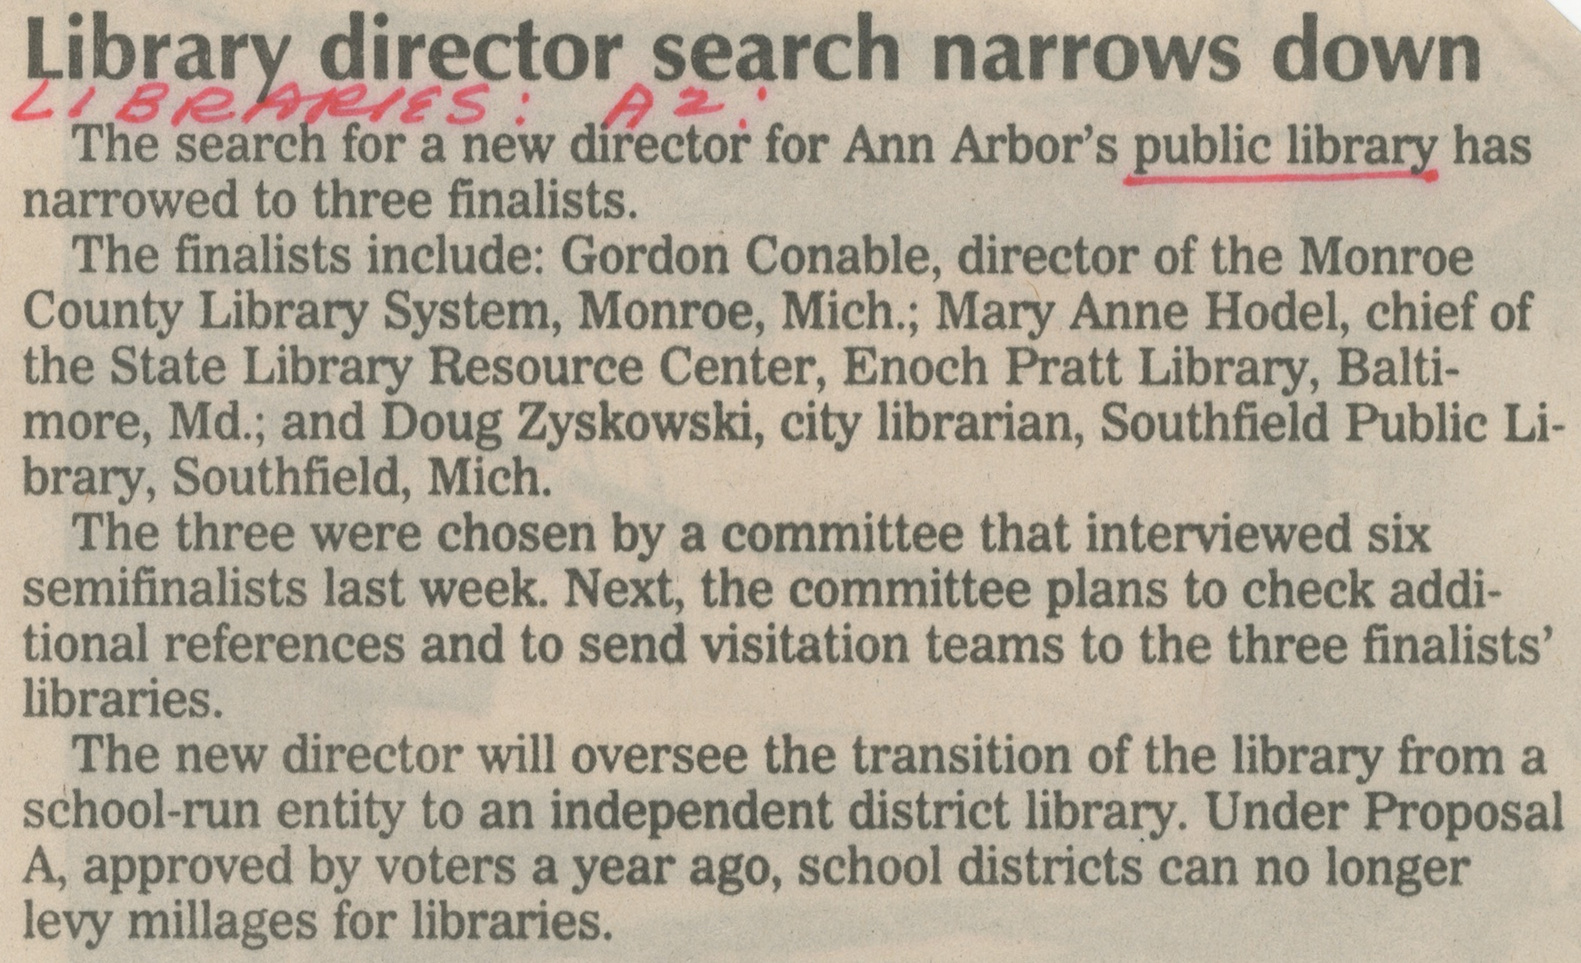 Library Director Search Narrows Down image